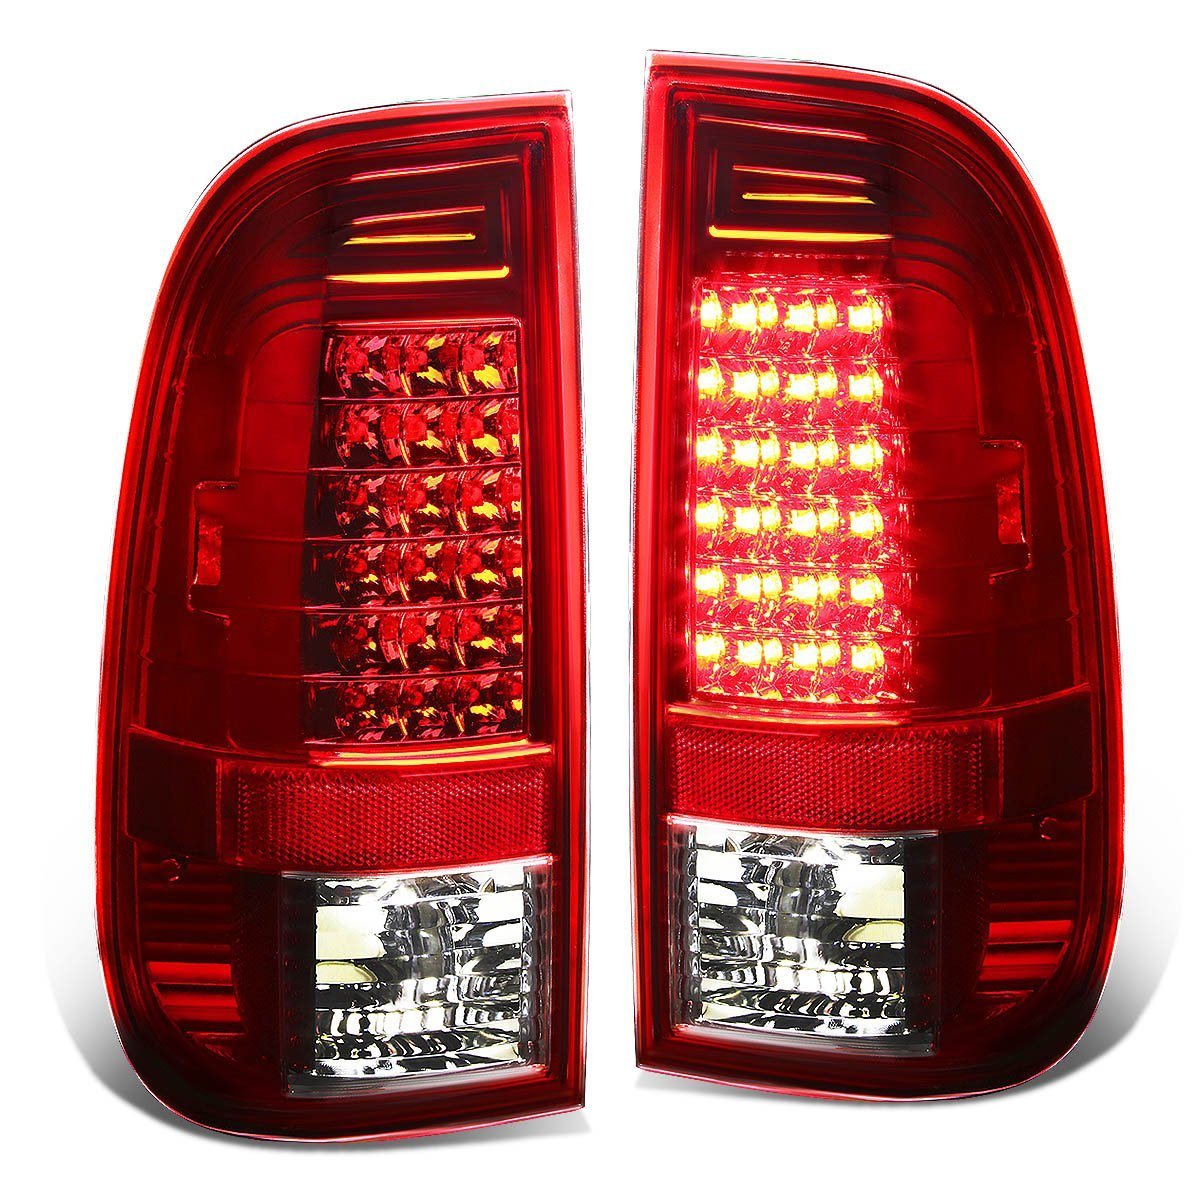 DNAMotoring TL-LED-F15097-CL Tail Light Assembly, Driver and Passenger Side DNA Motoring